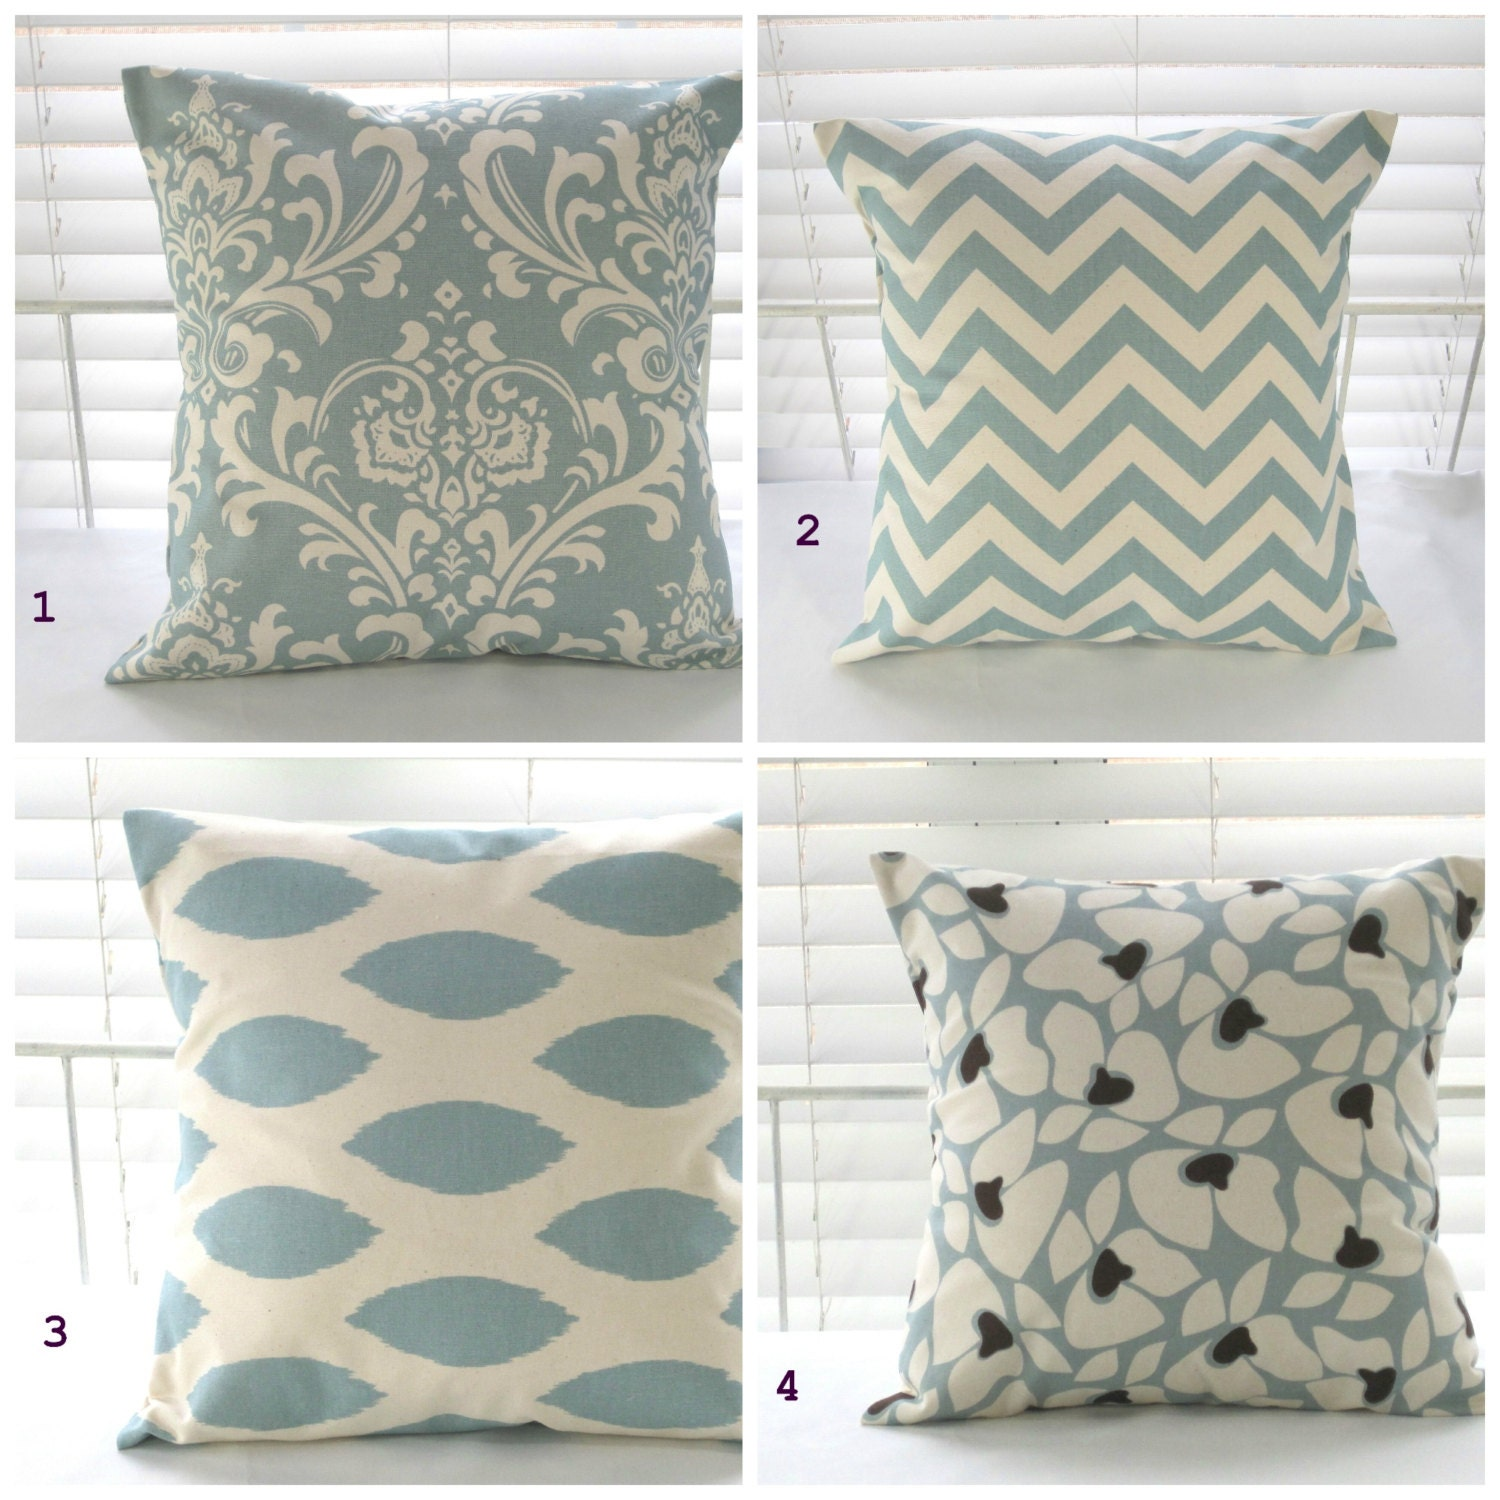 Decorative Pillows Etsy : ON SALE Pillow Cover Pillow Decorative Pillow by PillowsByJanet